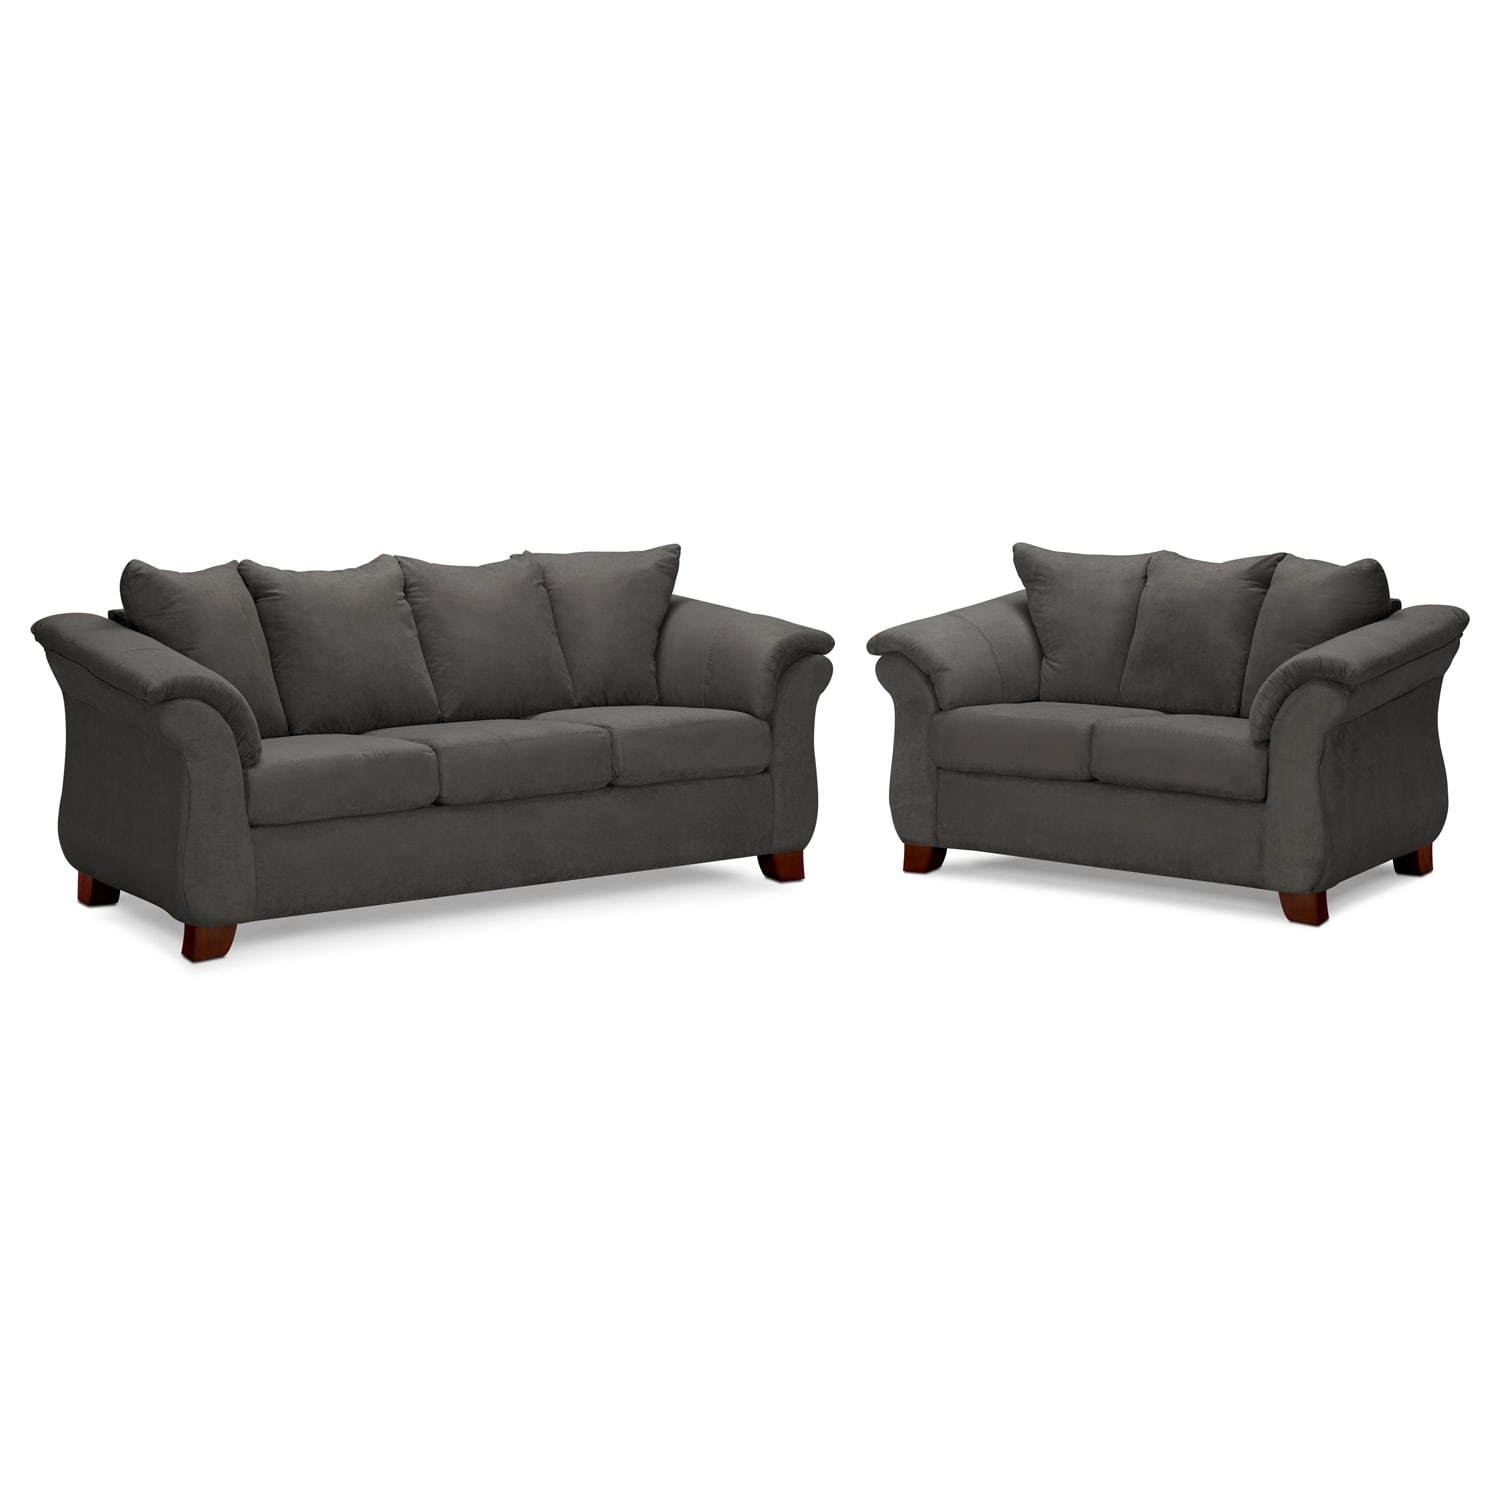 Living Room Furniture - Adrian Graphite 2 Pc. Living Room